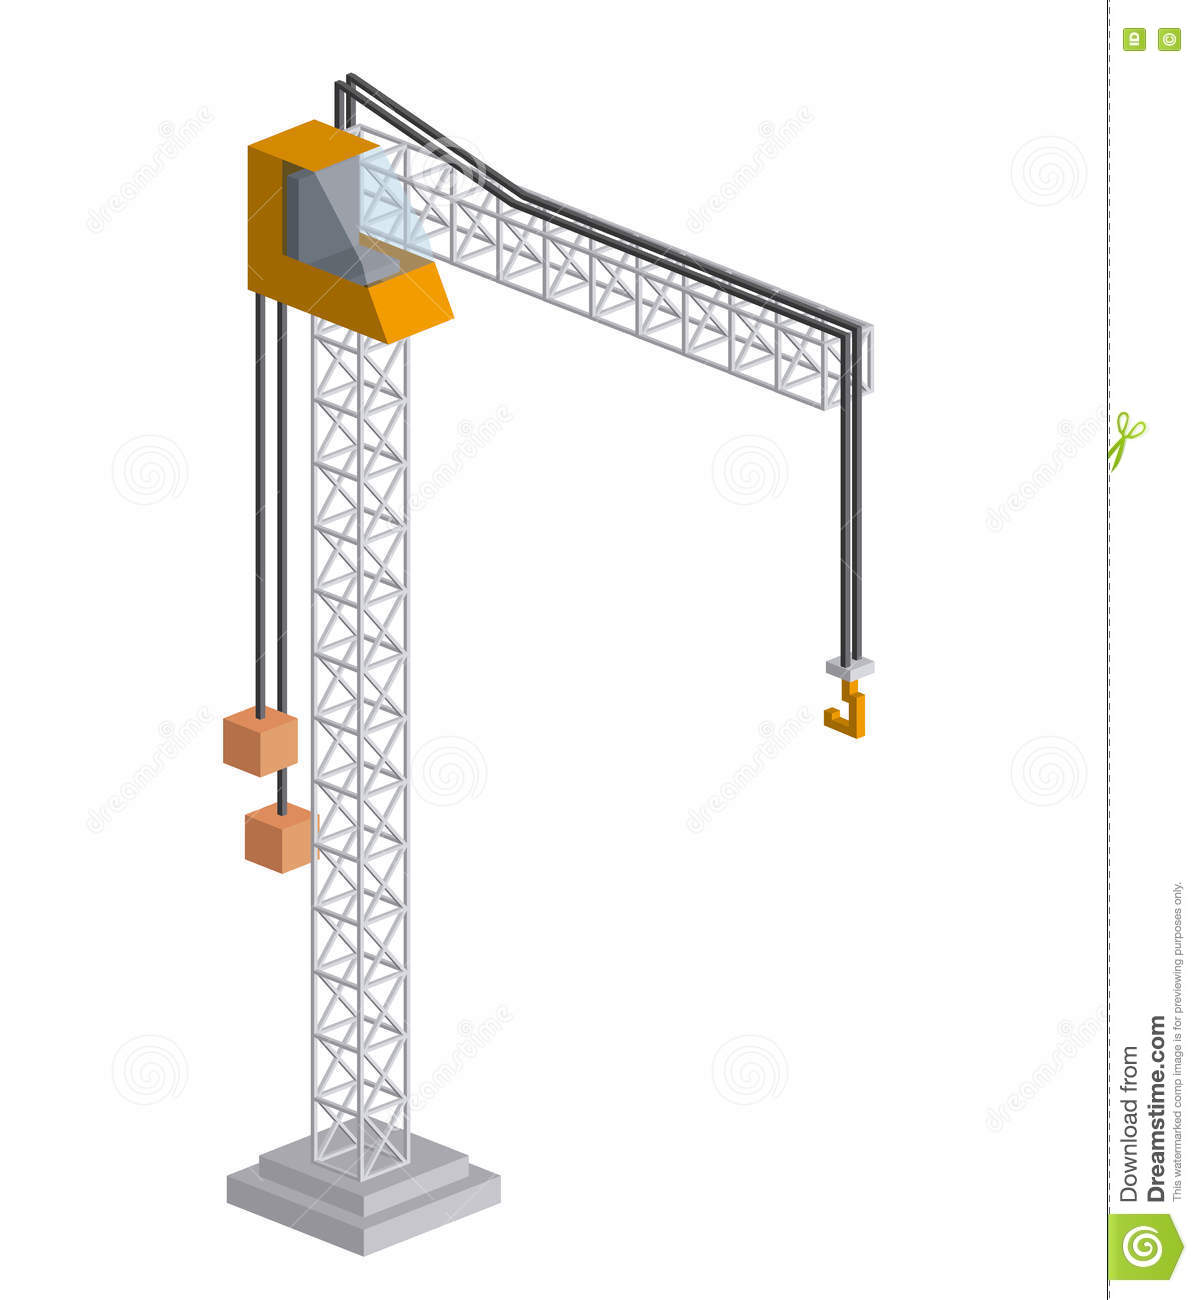 Tower Crane Design : Tower crane isometric icon stock vector illustration of